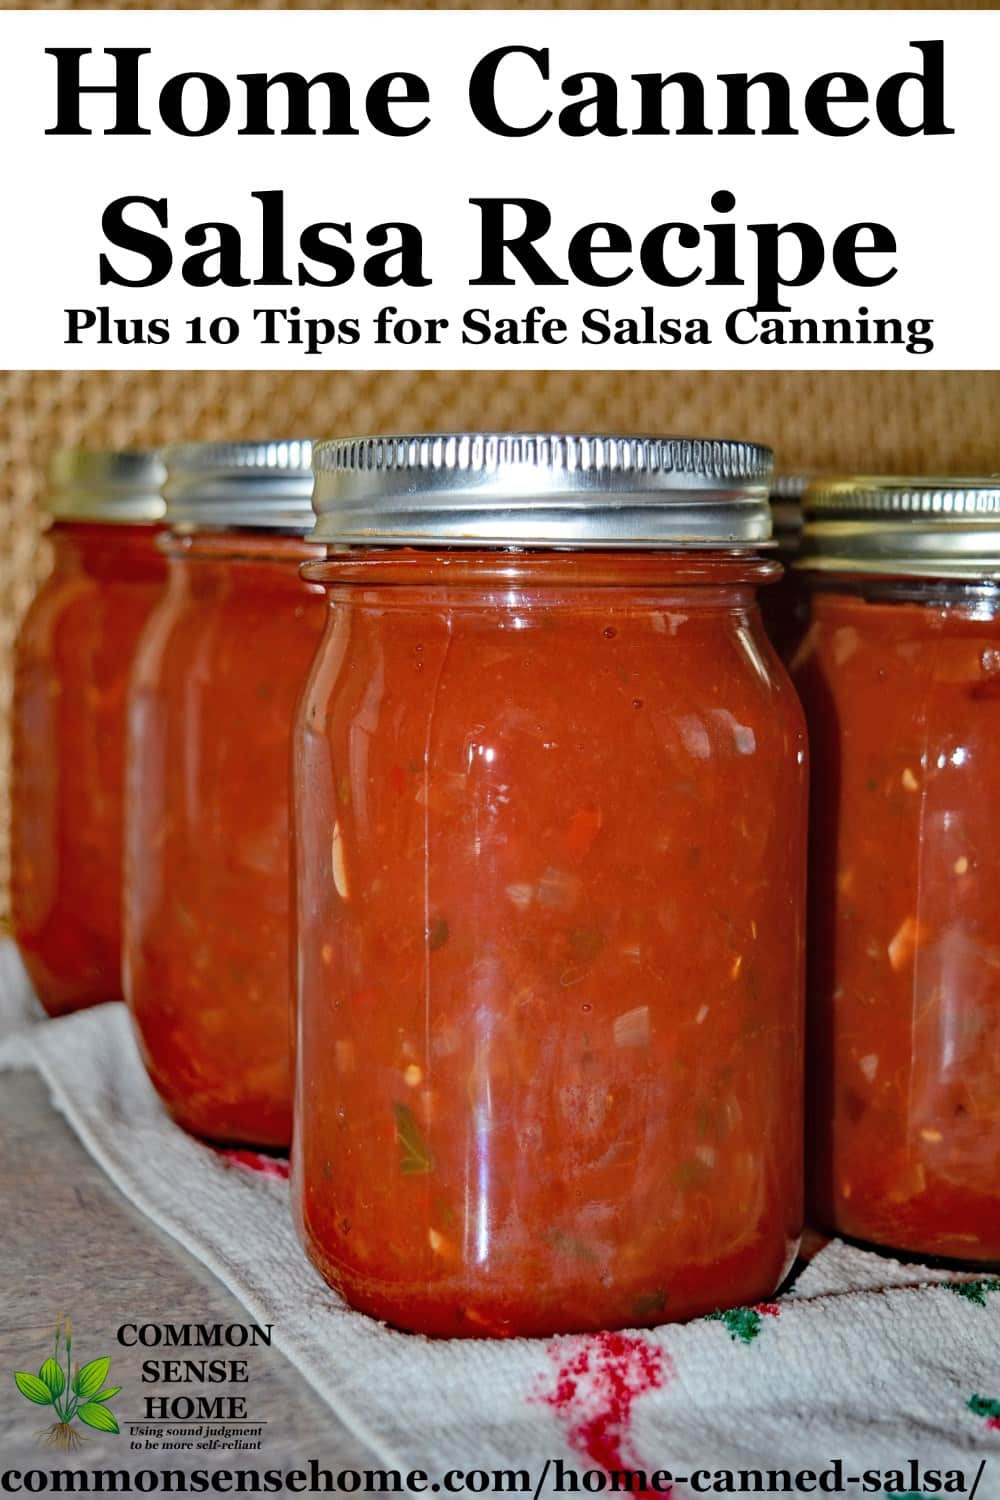 Sweet Salsa Recipe For Canning  Home Canned Salsa Recipe Plus 10 Tips for Canning Salsa